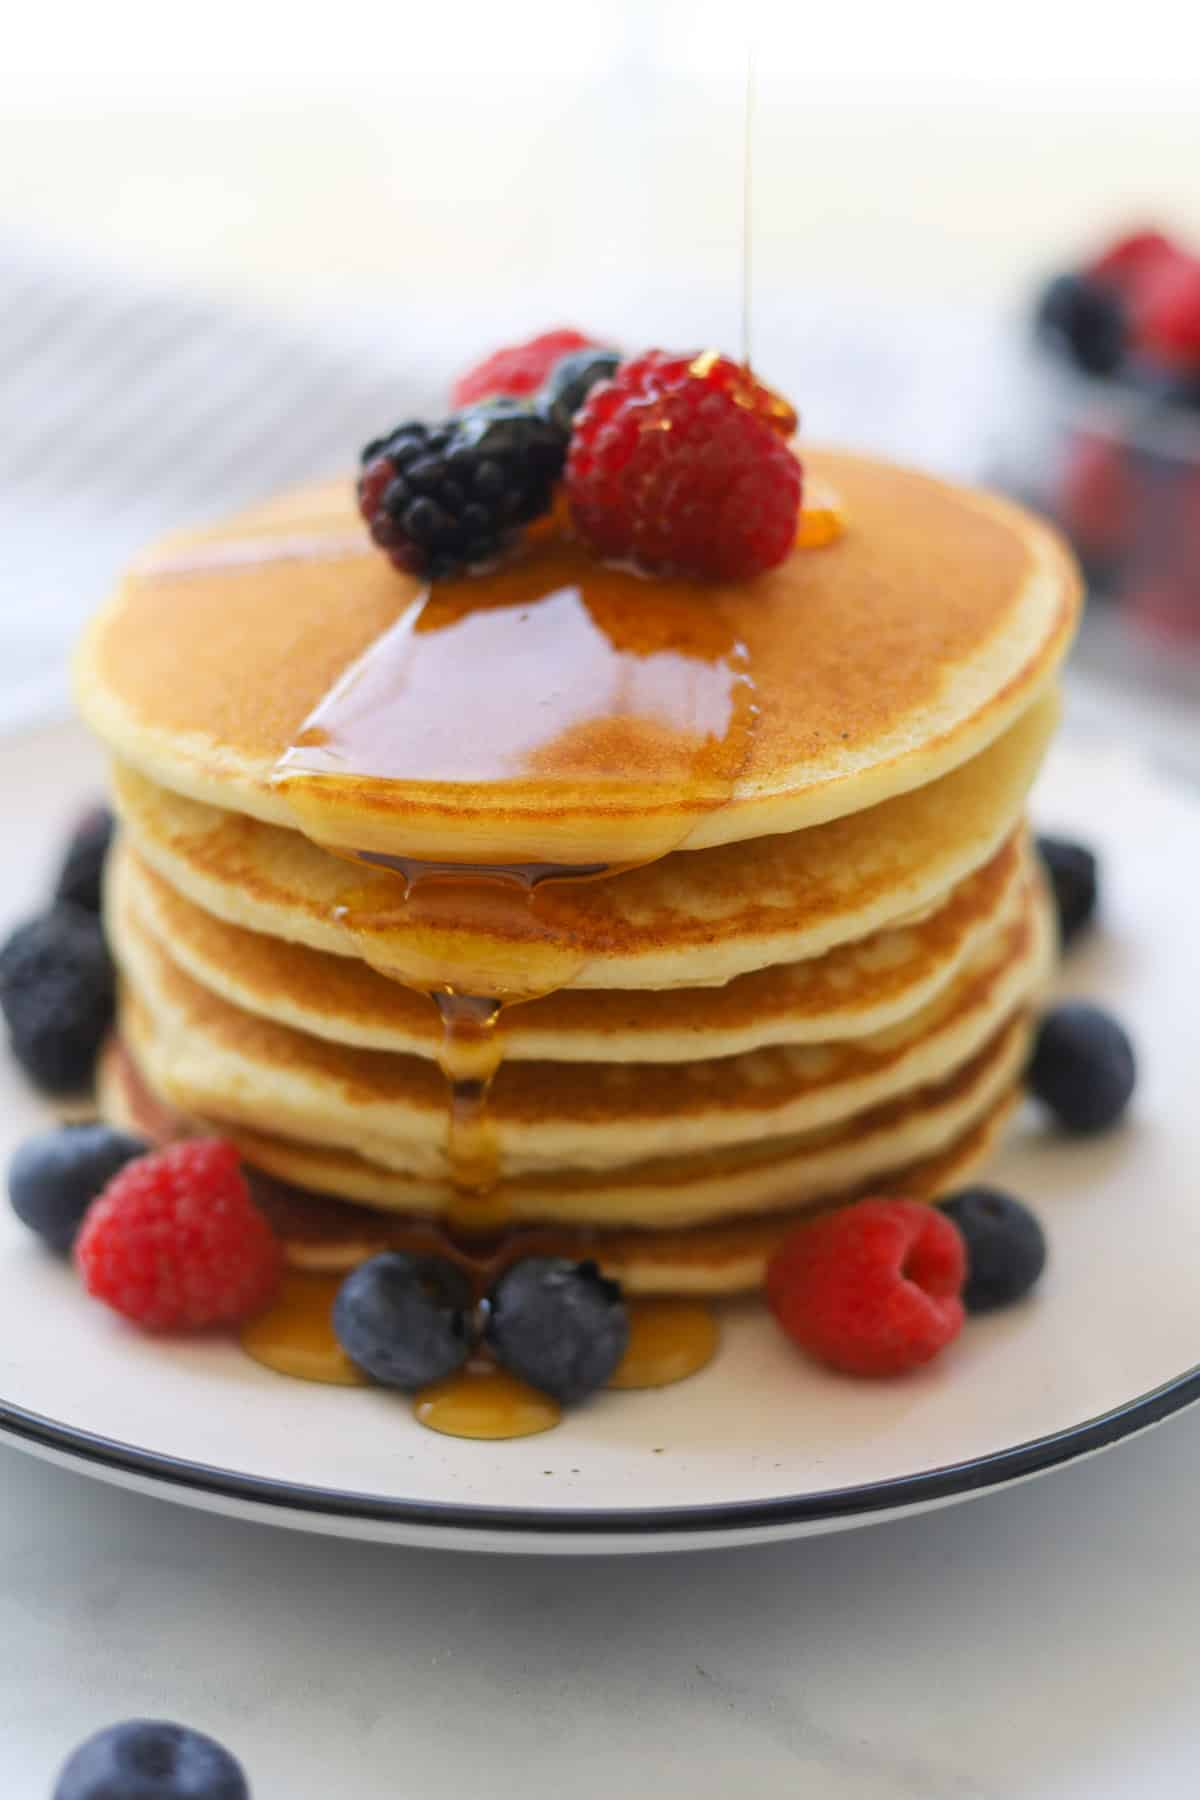 Stack of pancakes on a plate with drizzle of maple syrup.